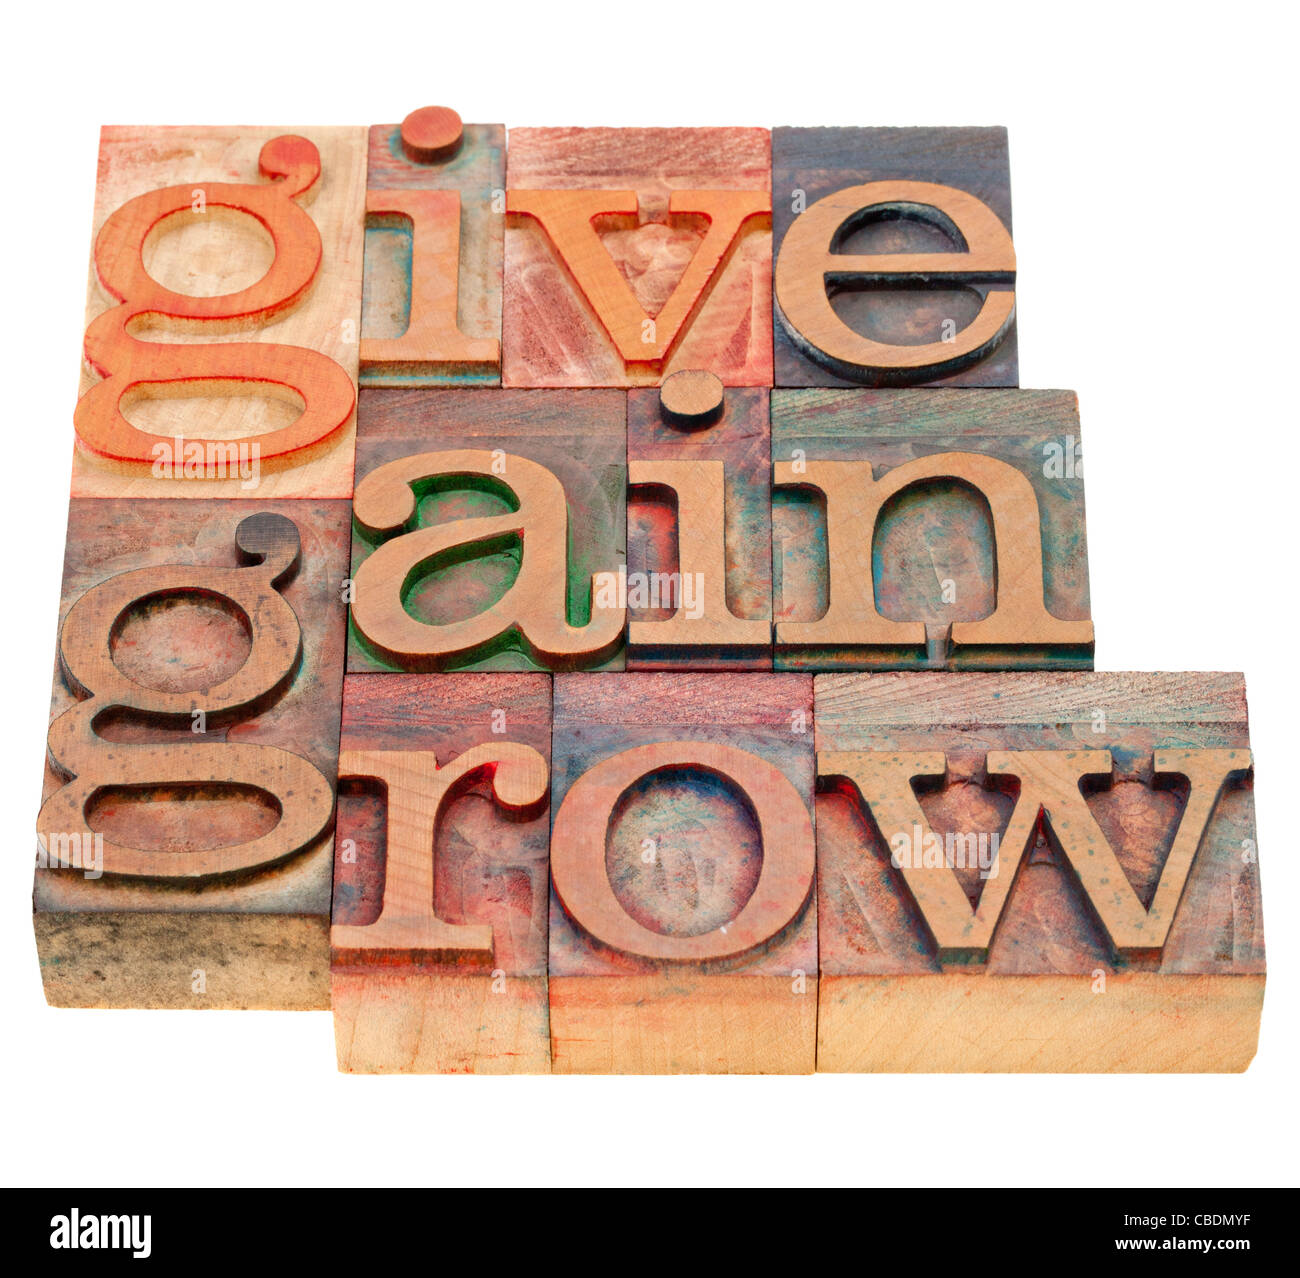 give, gain and grow -personal development concept - isolated word abstract in vintage wood letterpress printing - Stock Image